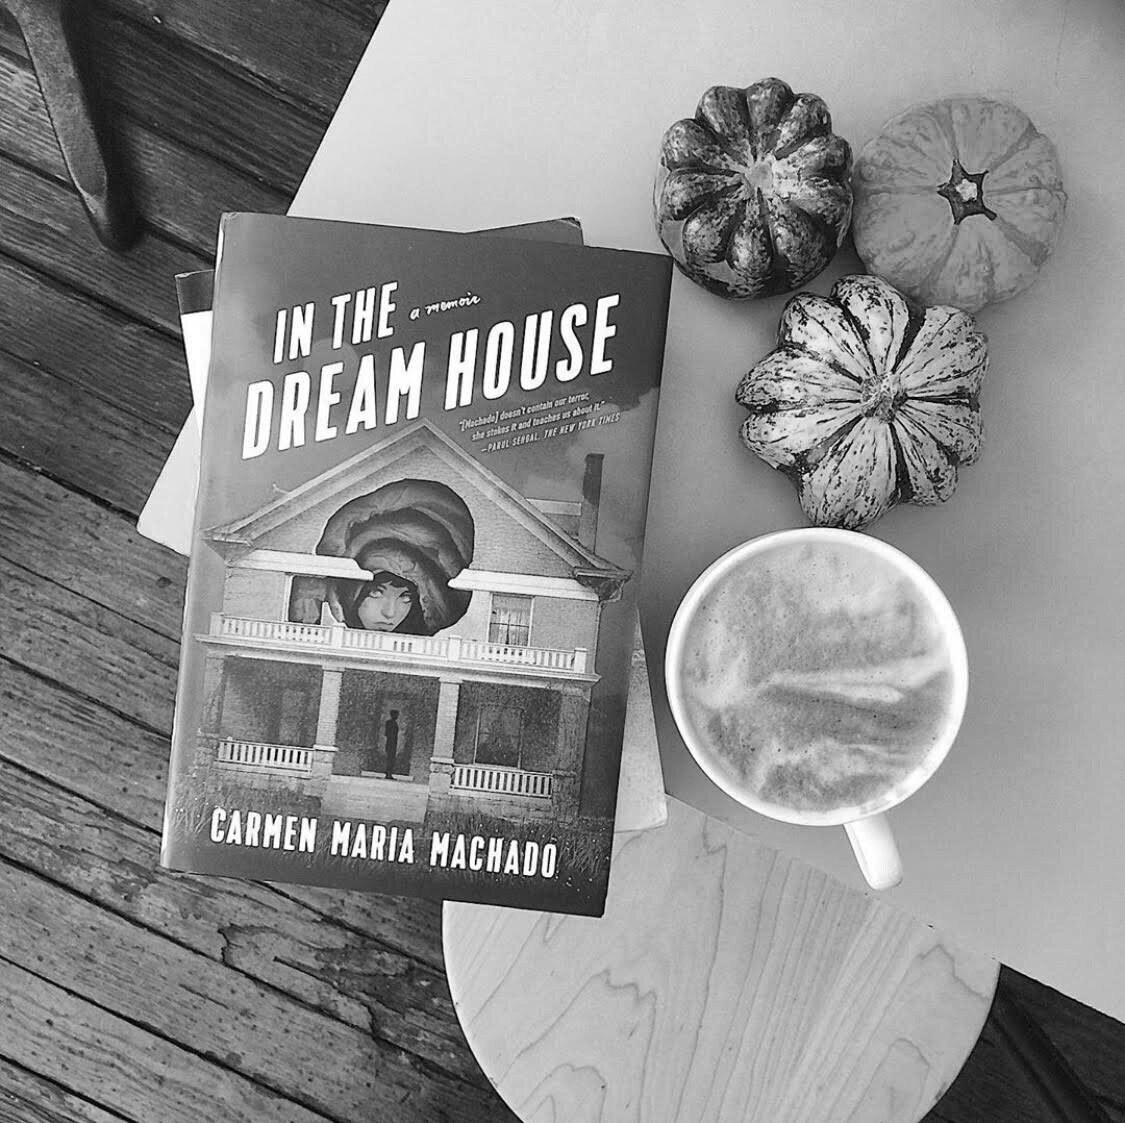 image of the book In The Dream House on a table